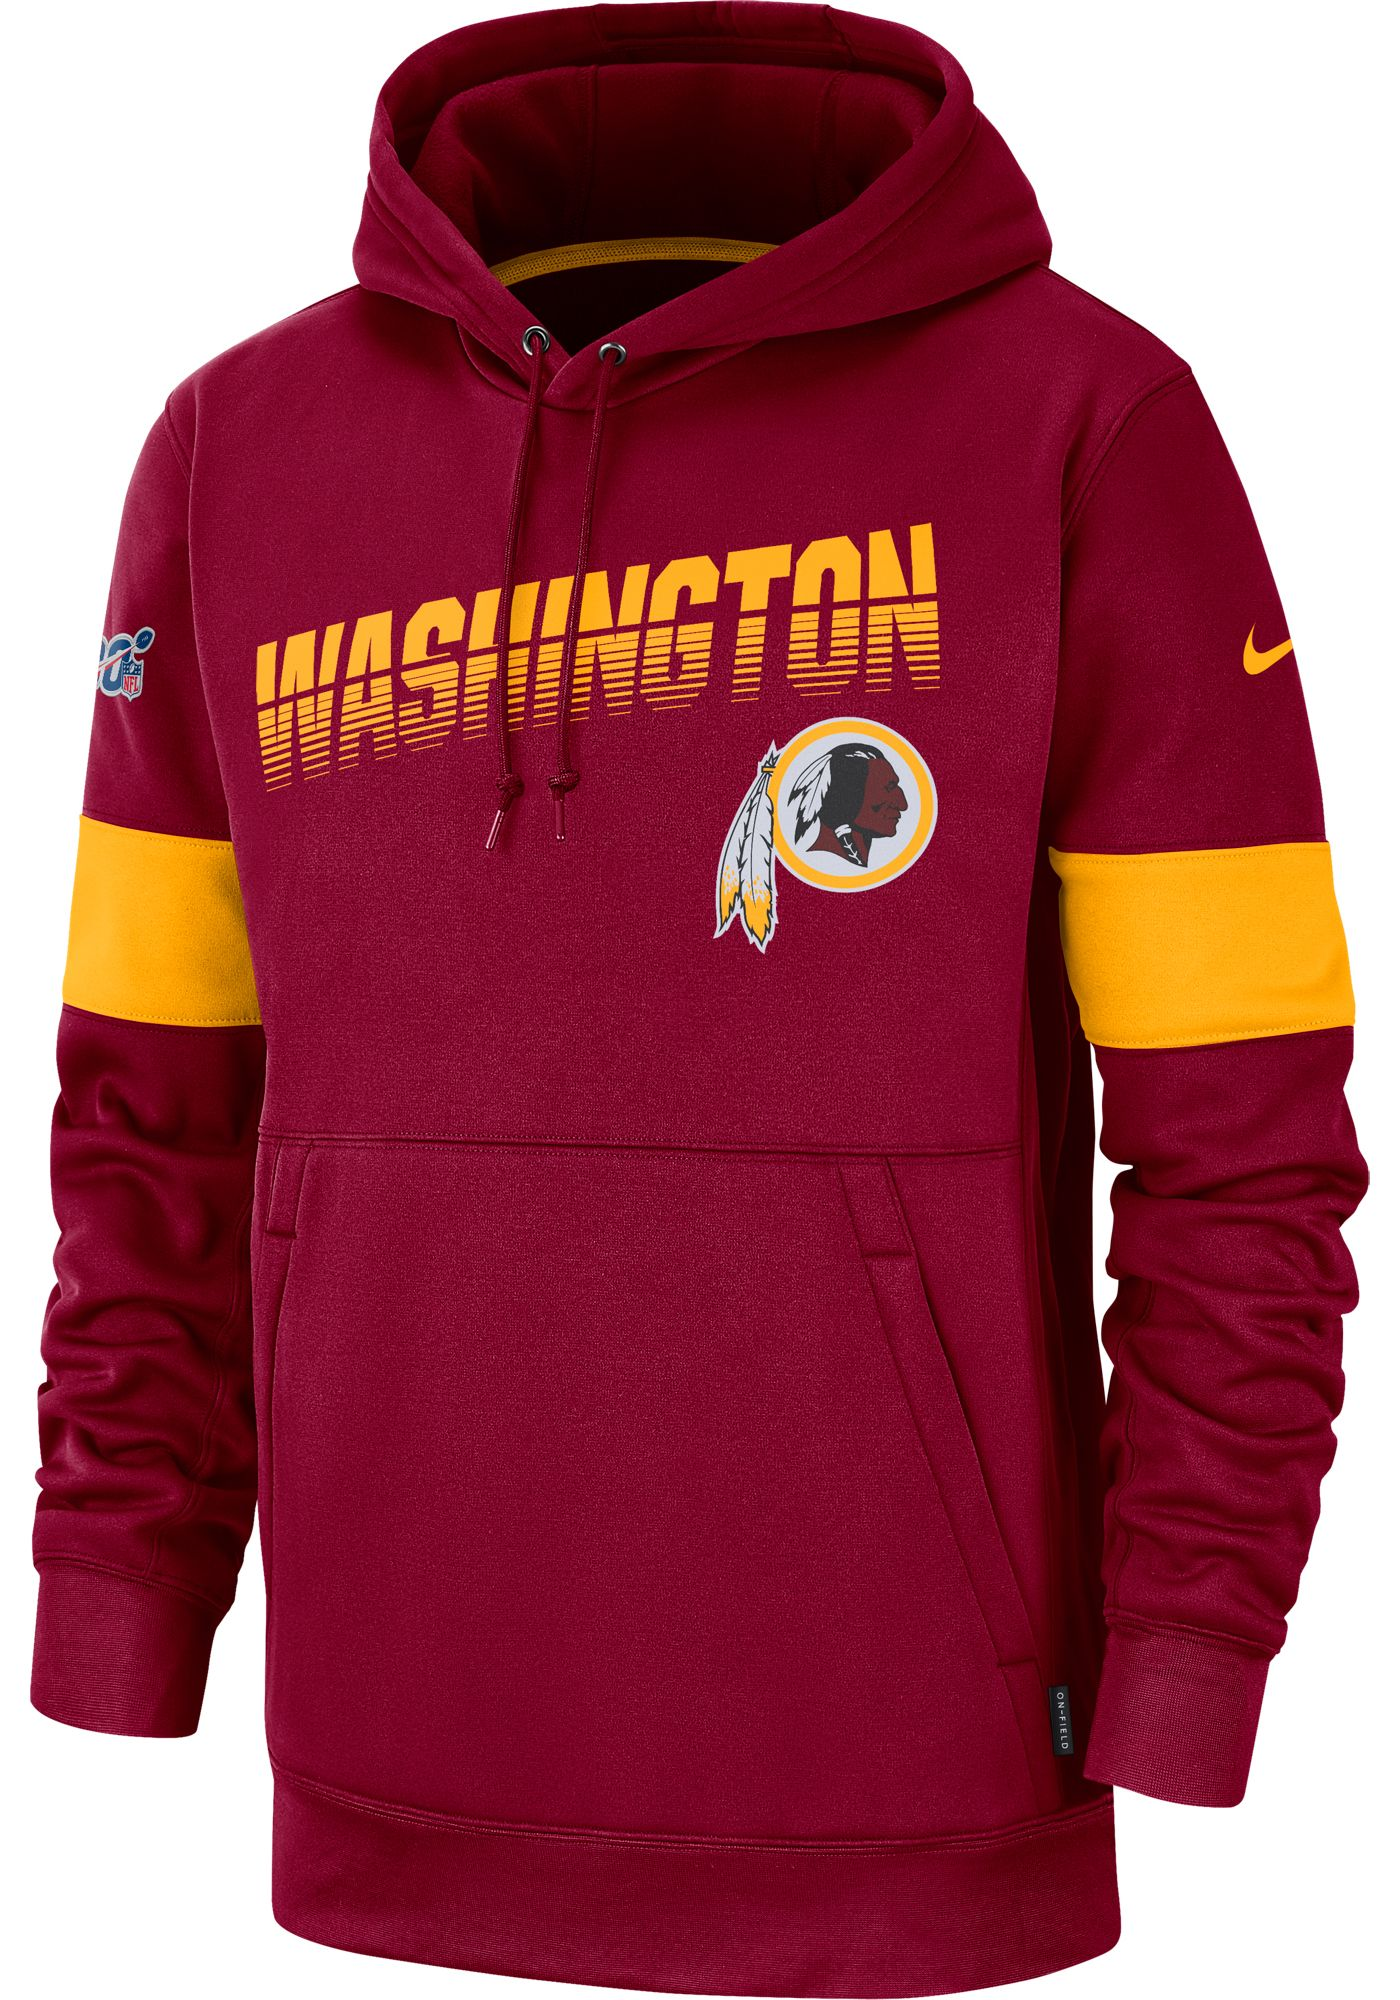 Nike Men's Washington Redskins 100th Sideline Therma-FIT Red Pullover Hoodie